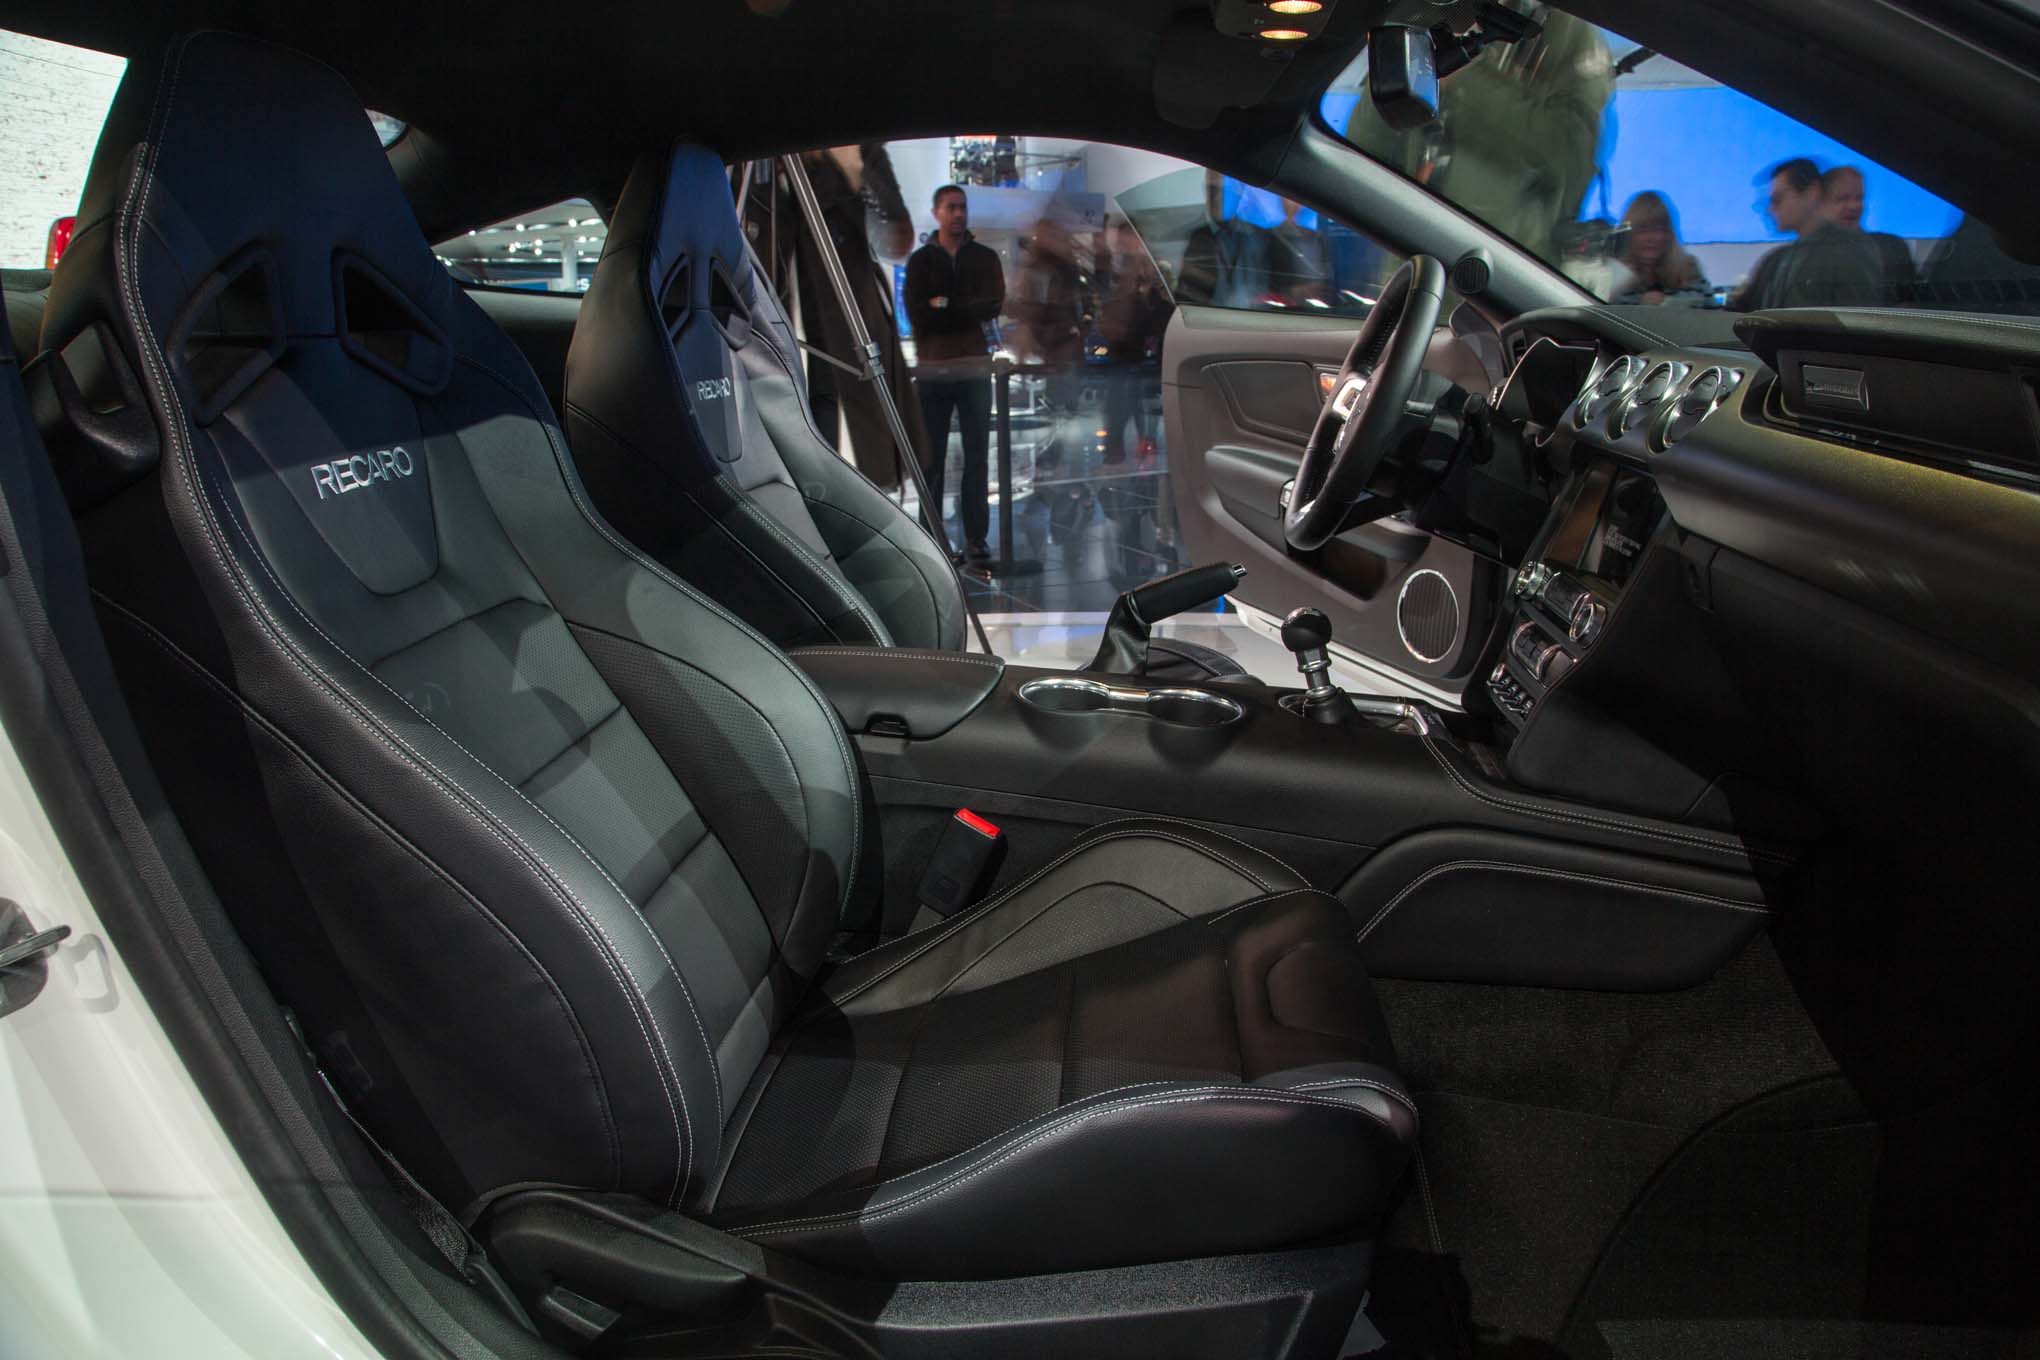 2018 Ford Mustang Gt Front Interior Seats 1 Motor Trend